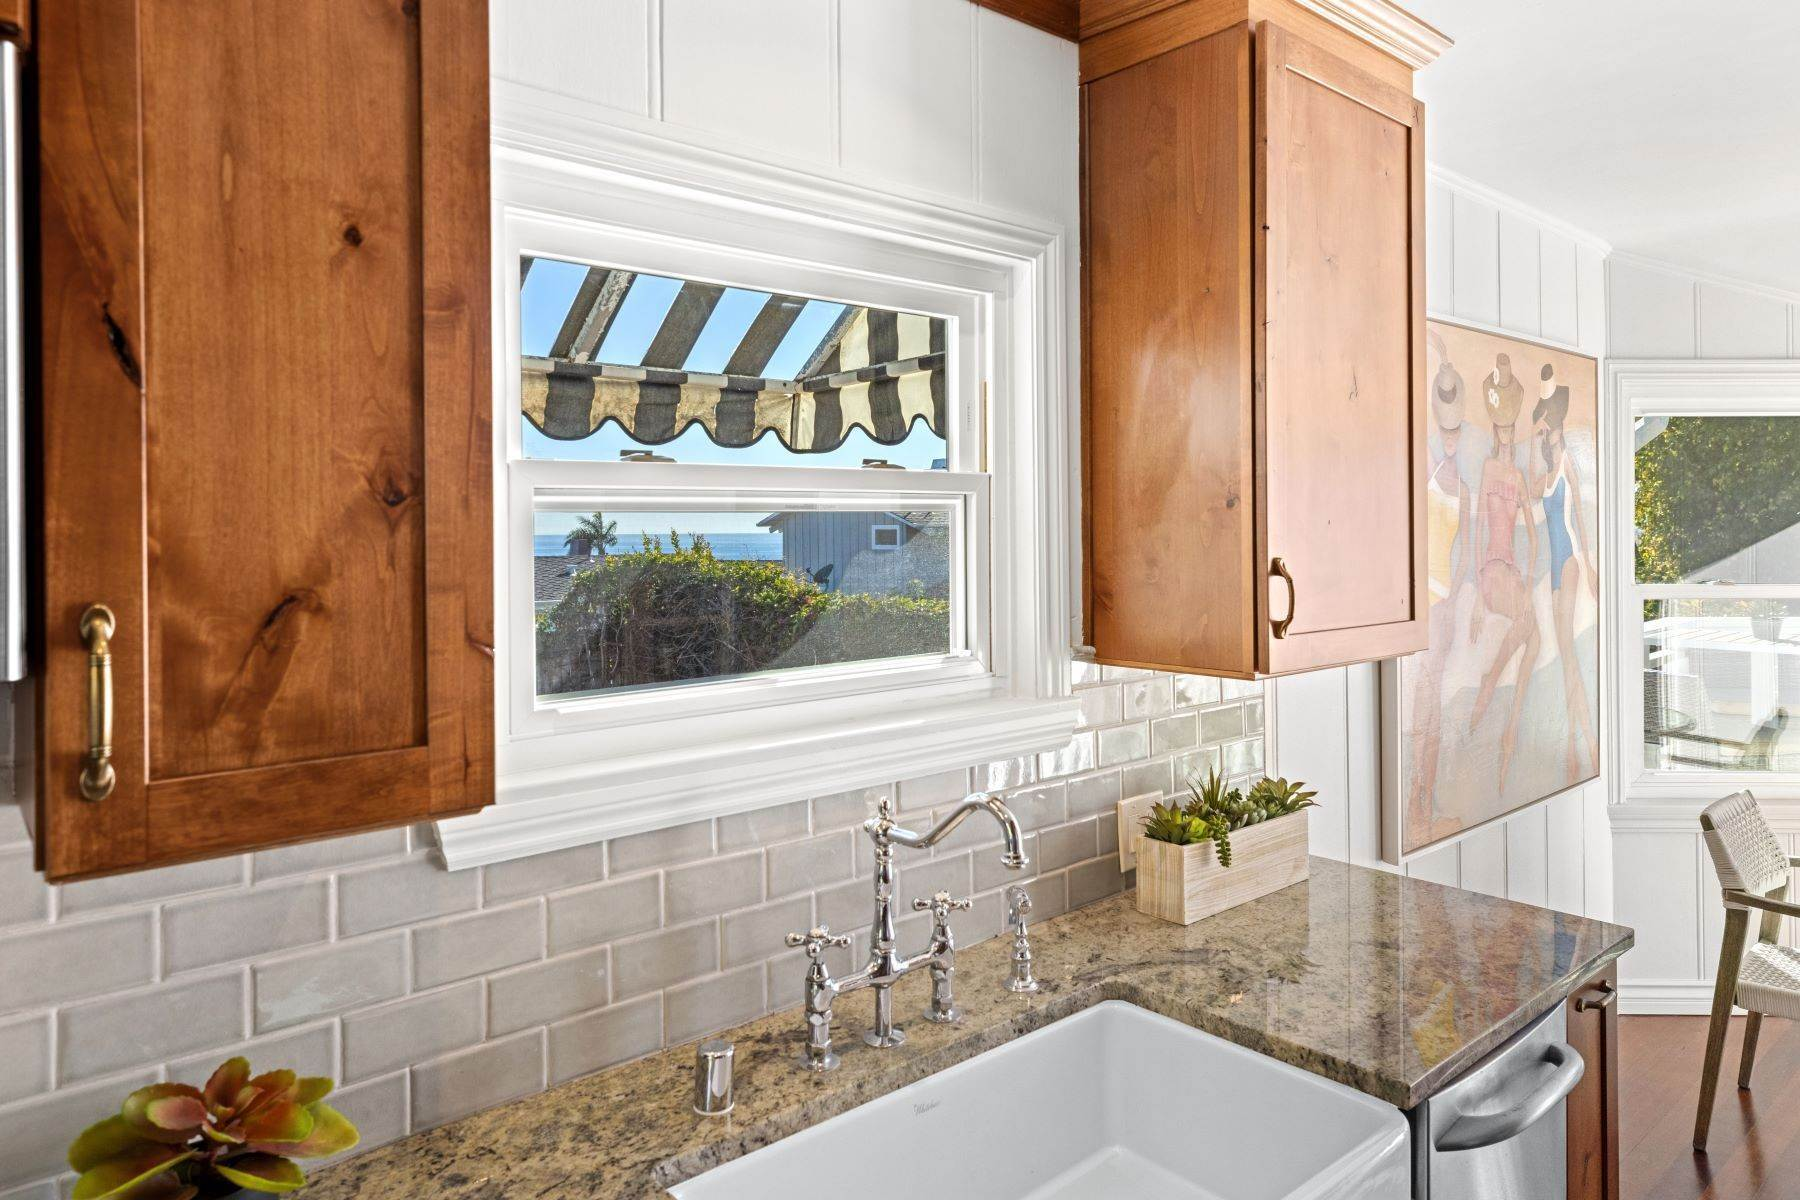 20. Single Family Homes for Sale at 24 South Portola, Laguna Beach, CA 92651 24 South Portola Laguna Beach, California 92651 United States